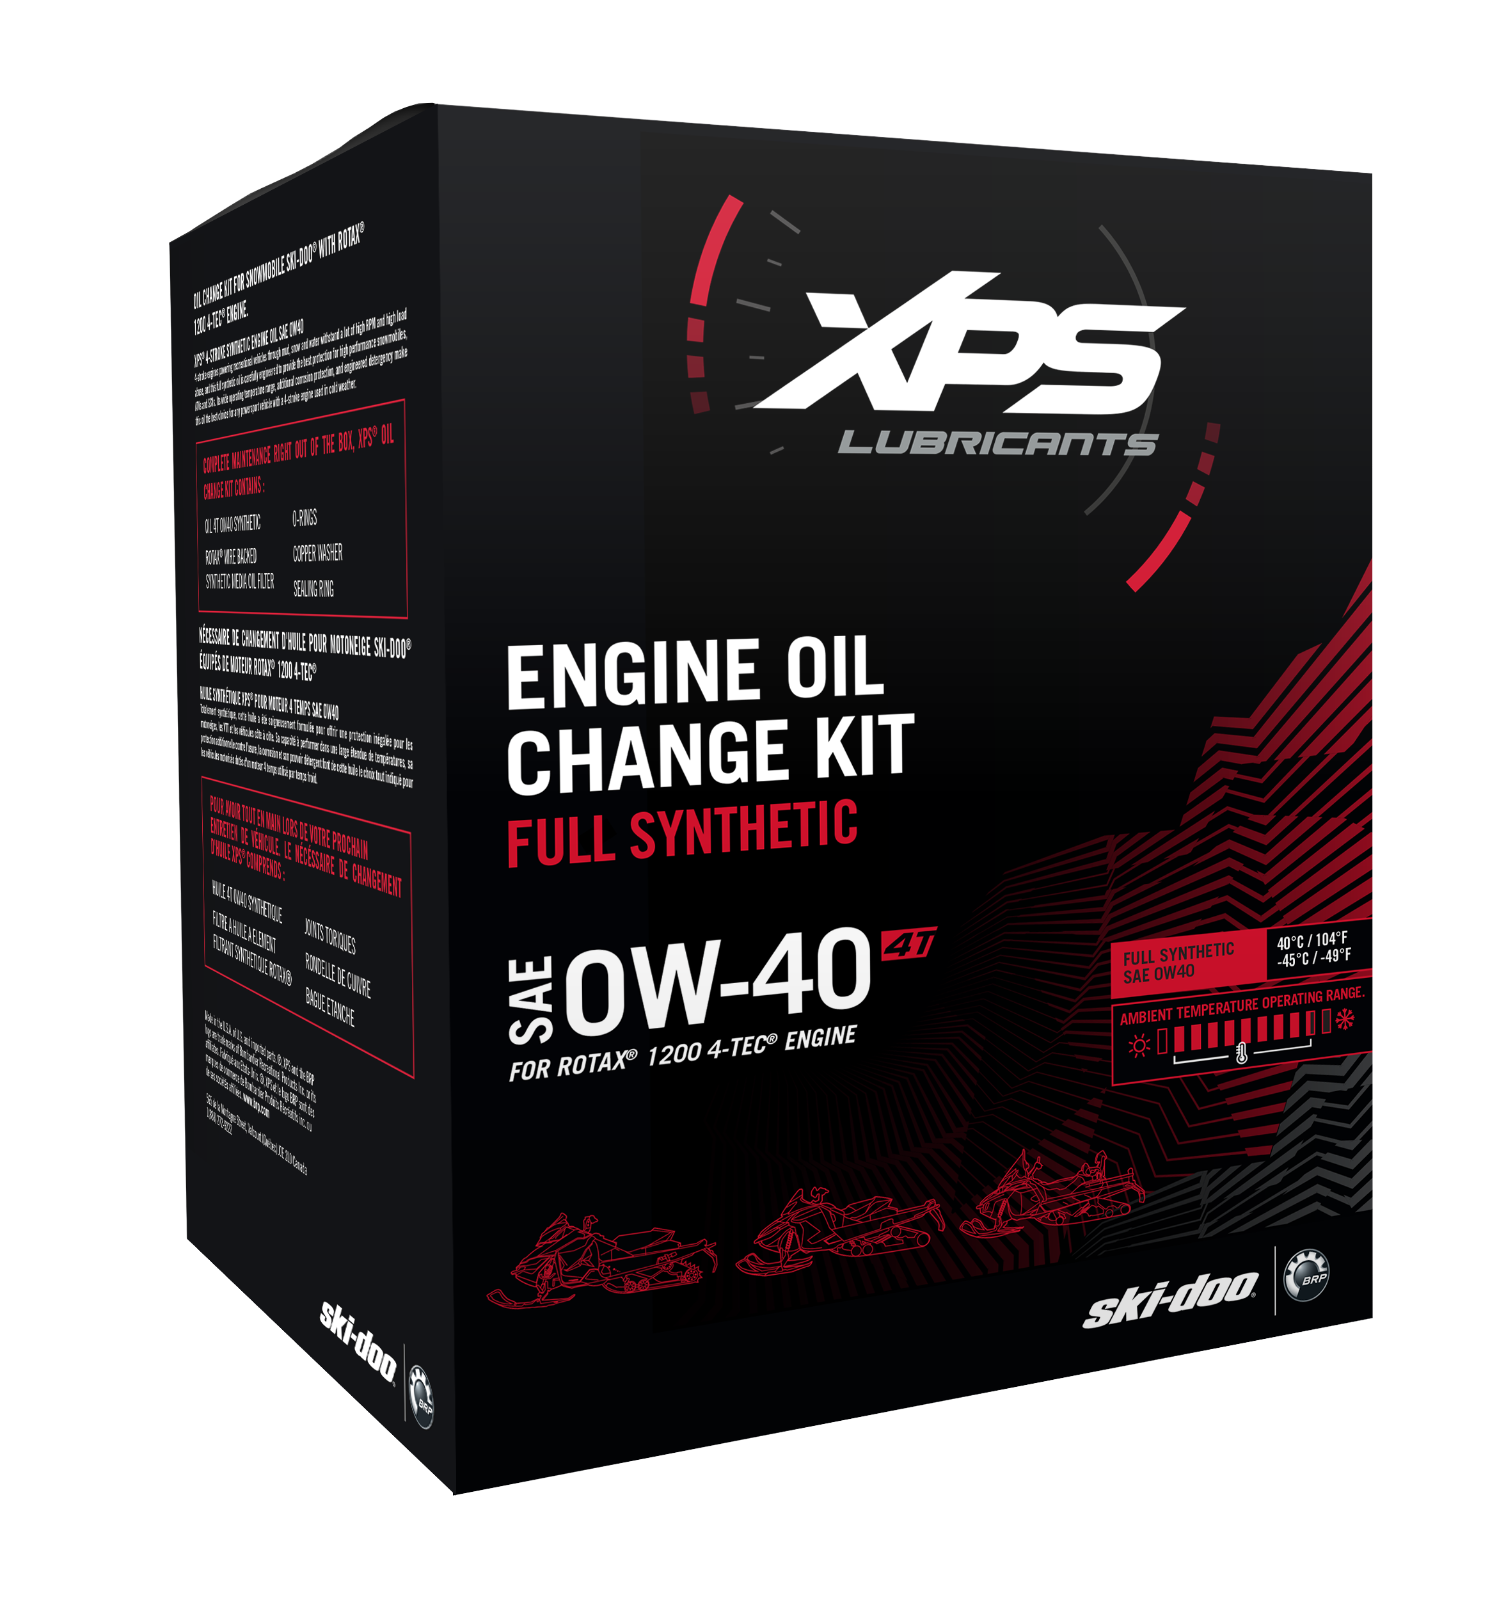 SKI-DOO 4T OW-40 SYNTHETIC OIL CHANGE KIT FOR ROTAX 1200 ENGINE - 779255